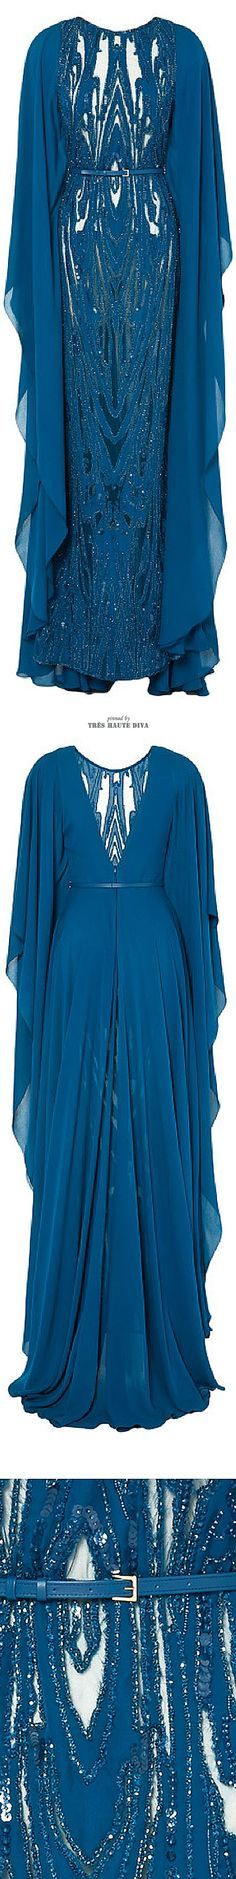 Ellie Saab Embroidered Blue Double Silk Georgette Butterfly Sleeve Gown ♔ SS 2015: